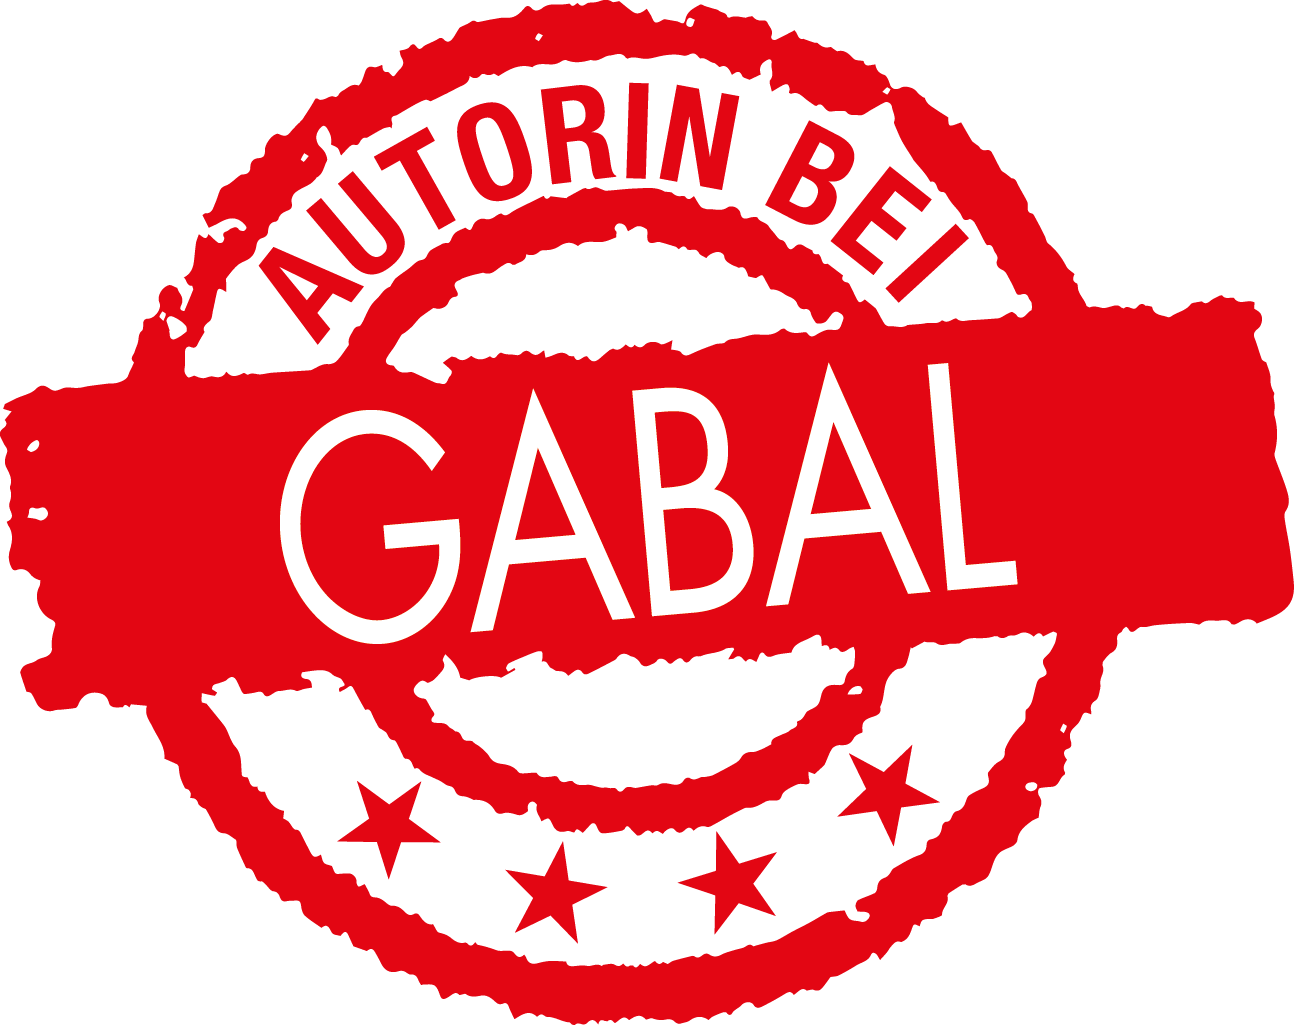 gabal autorenbutton final autorin 01